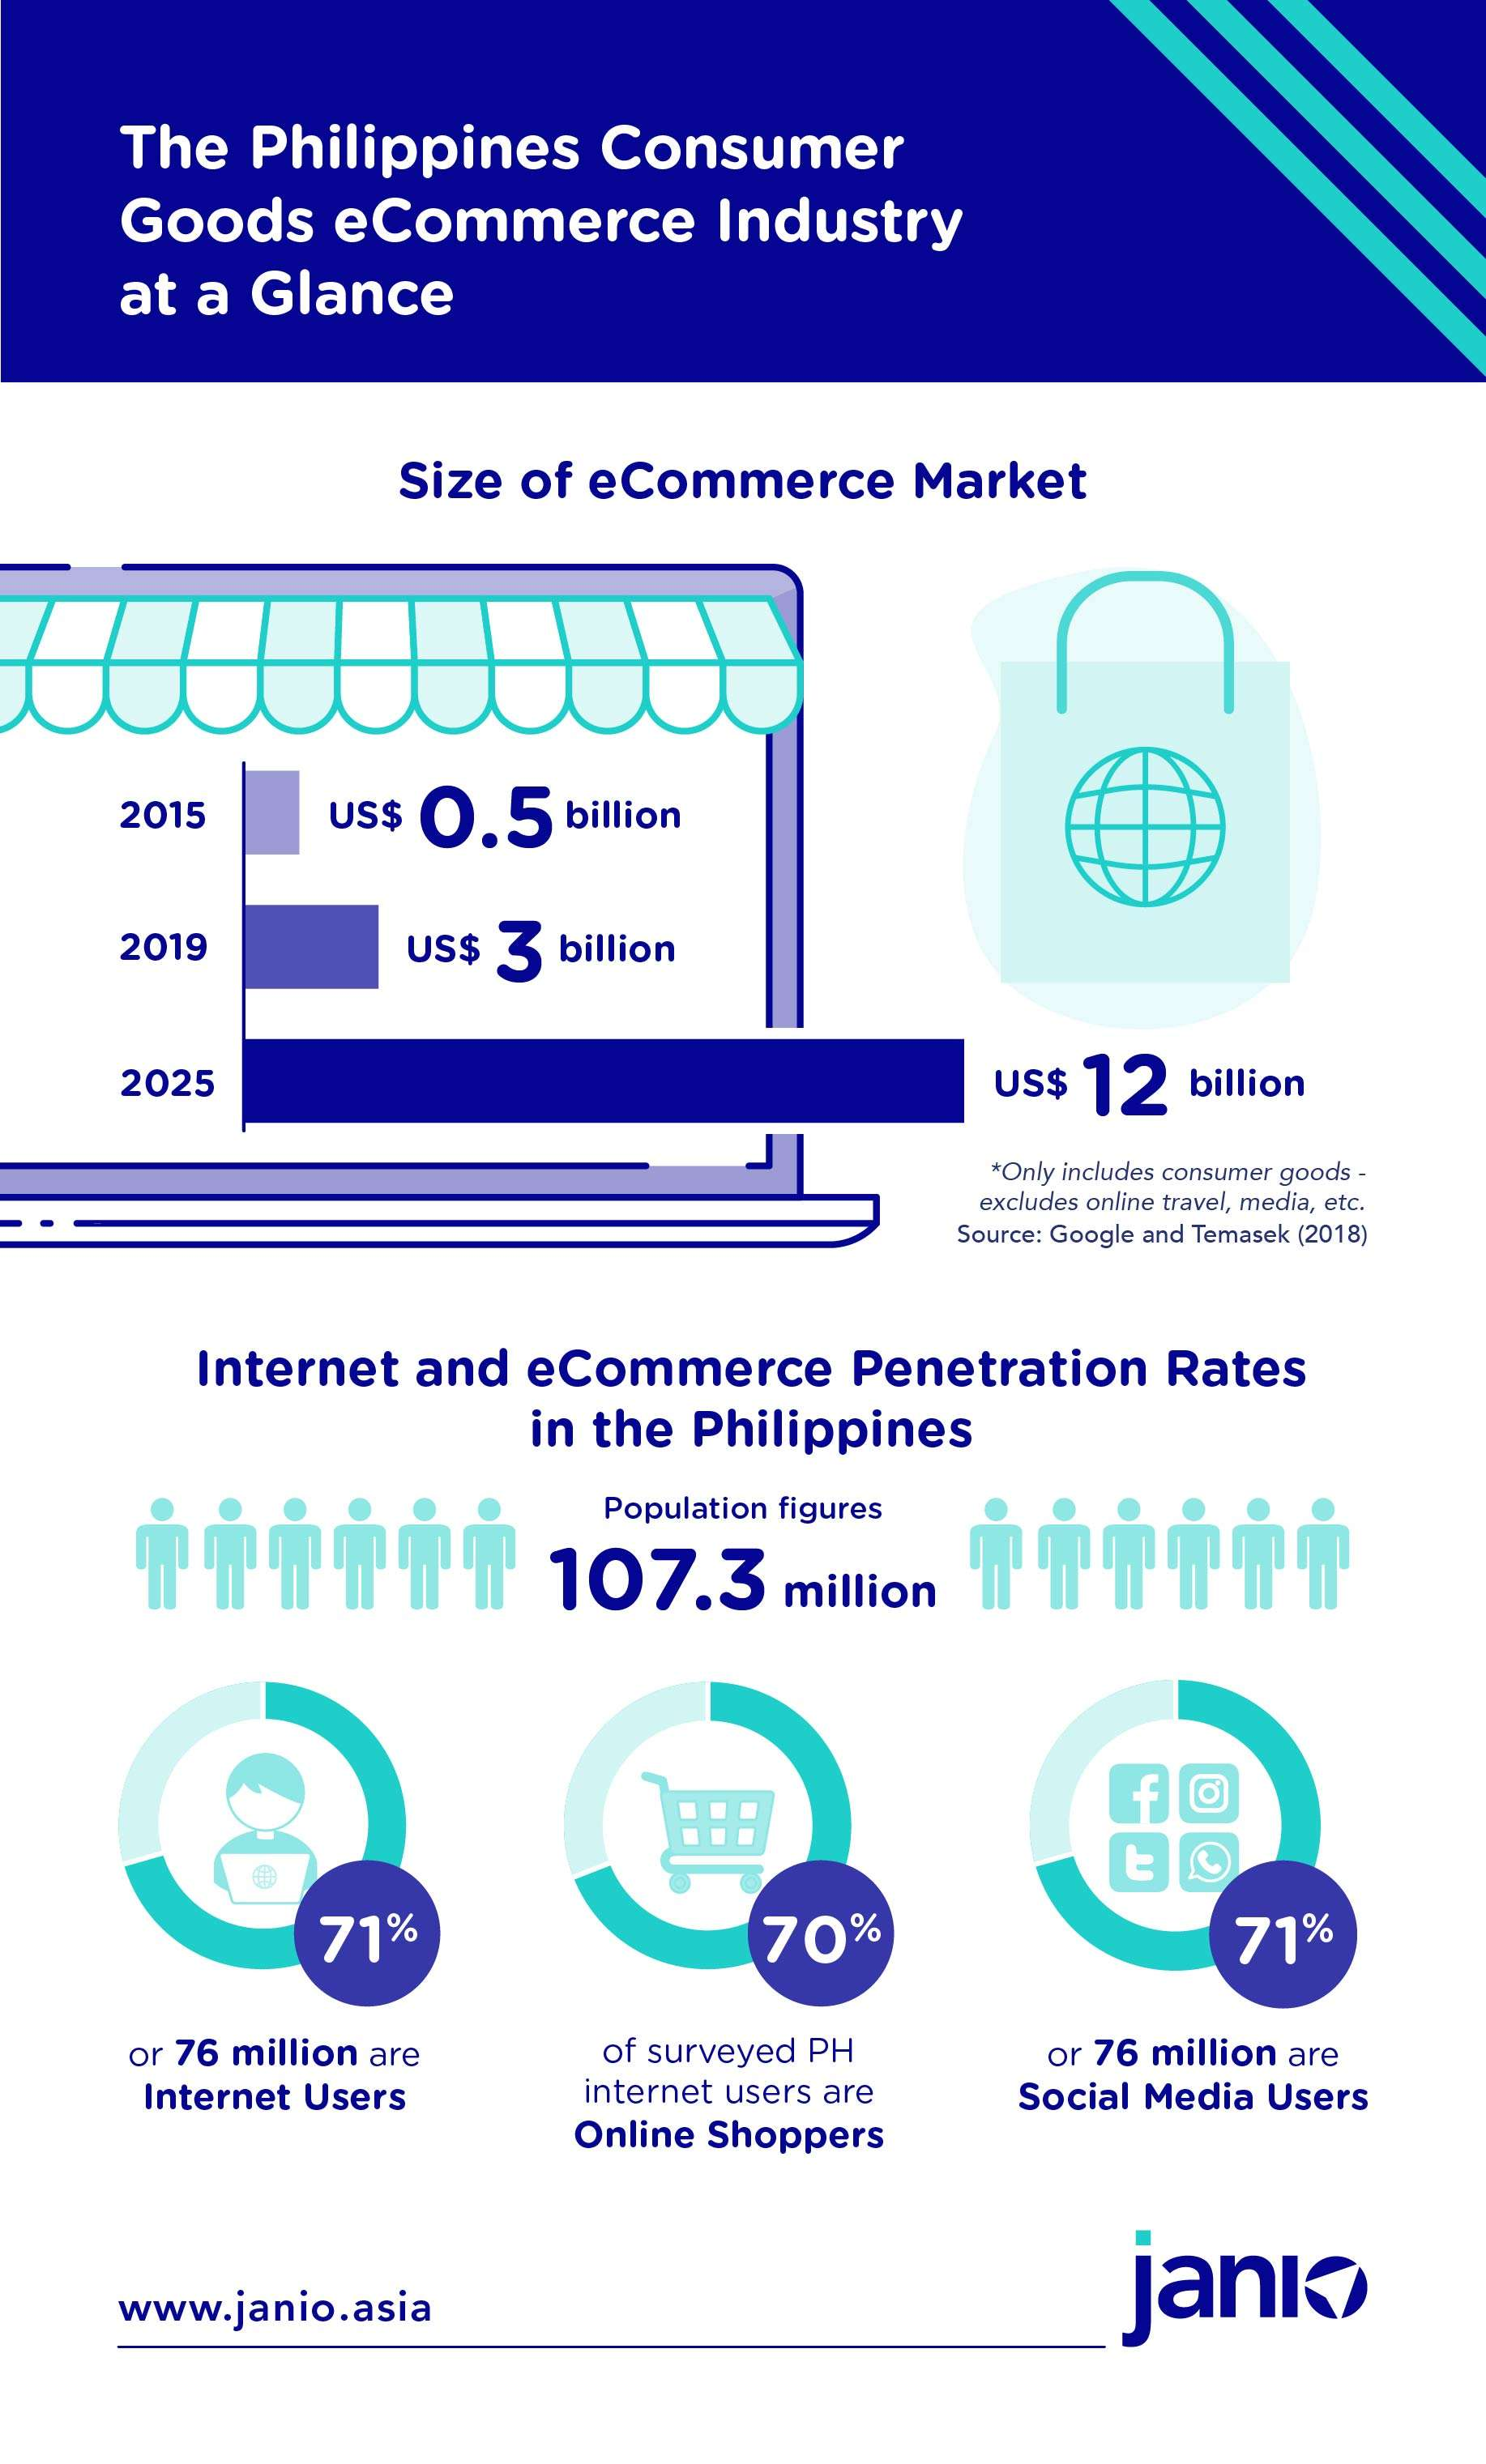 Philippines eCommerce market at a Glance - Philippines' eCommerce market size based on GMV - 2015- USD 0.5 billion, 2019 USD 3 billion and 2025 USD 12 billion. Includes statistics on Philippines' Internet and eCommerce Penetration rates from Wearesocial